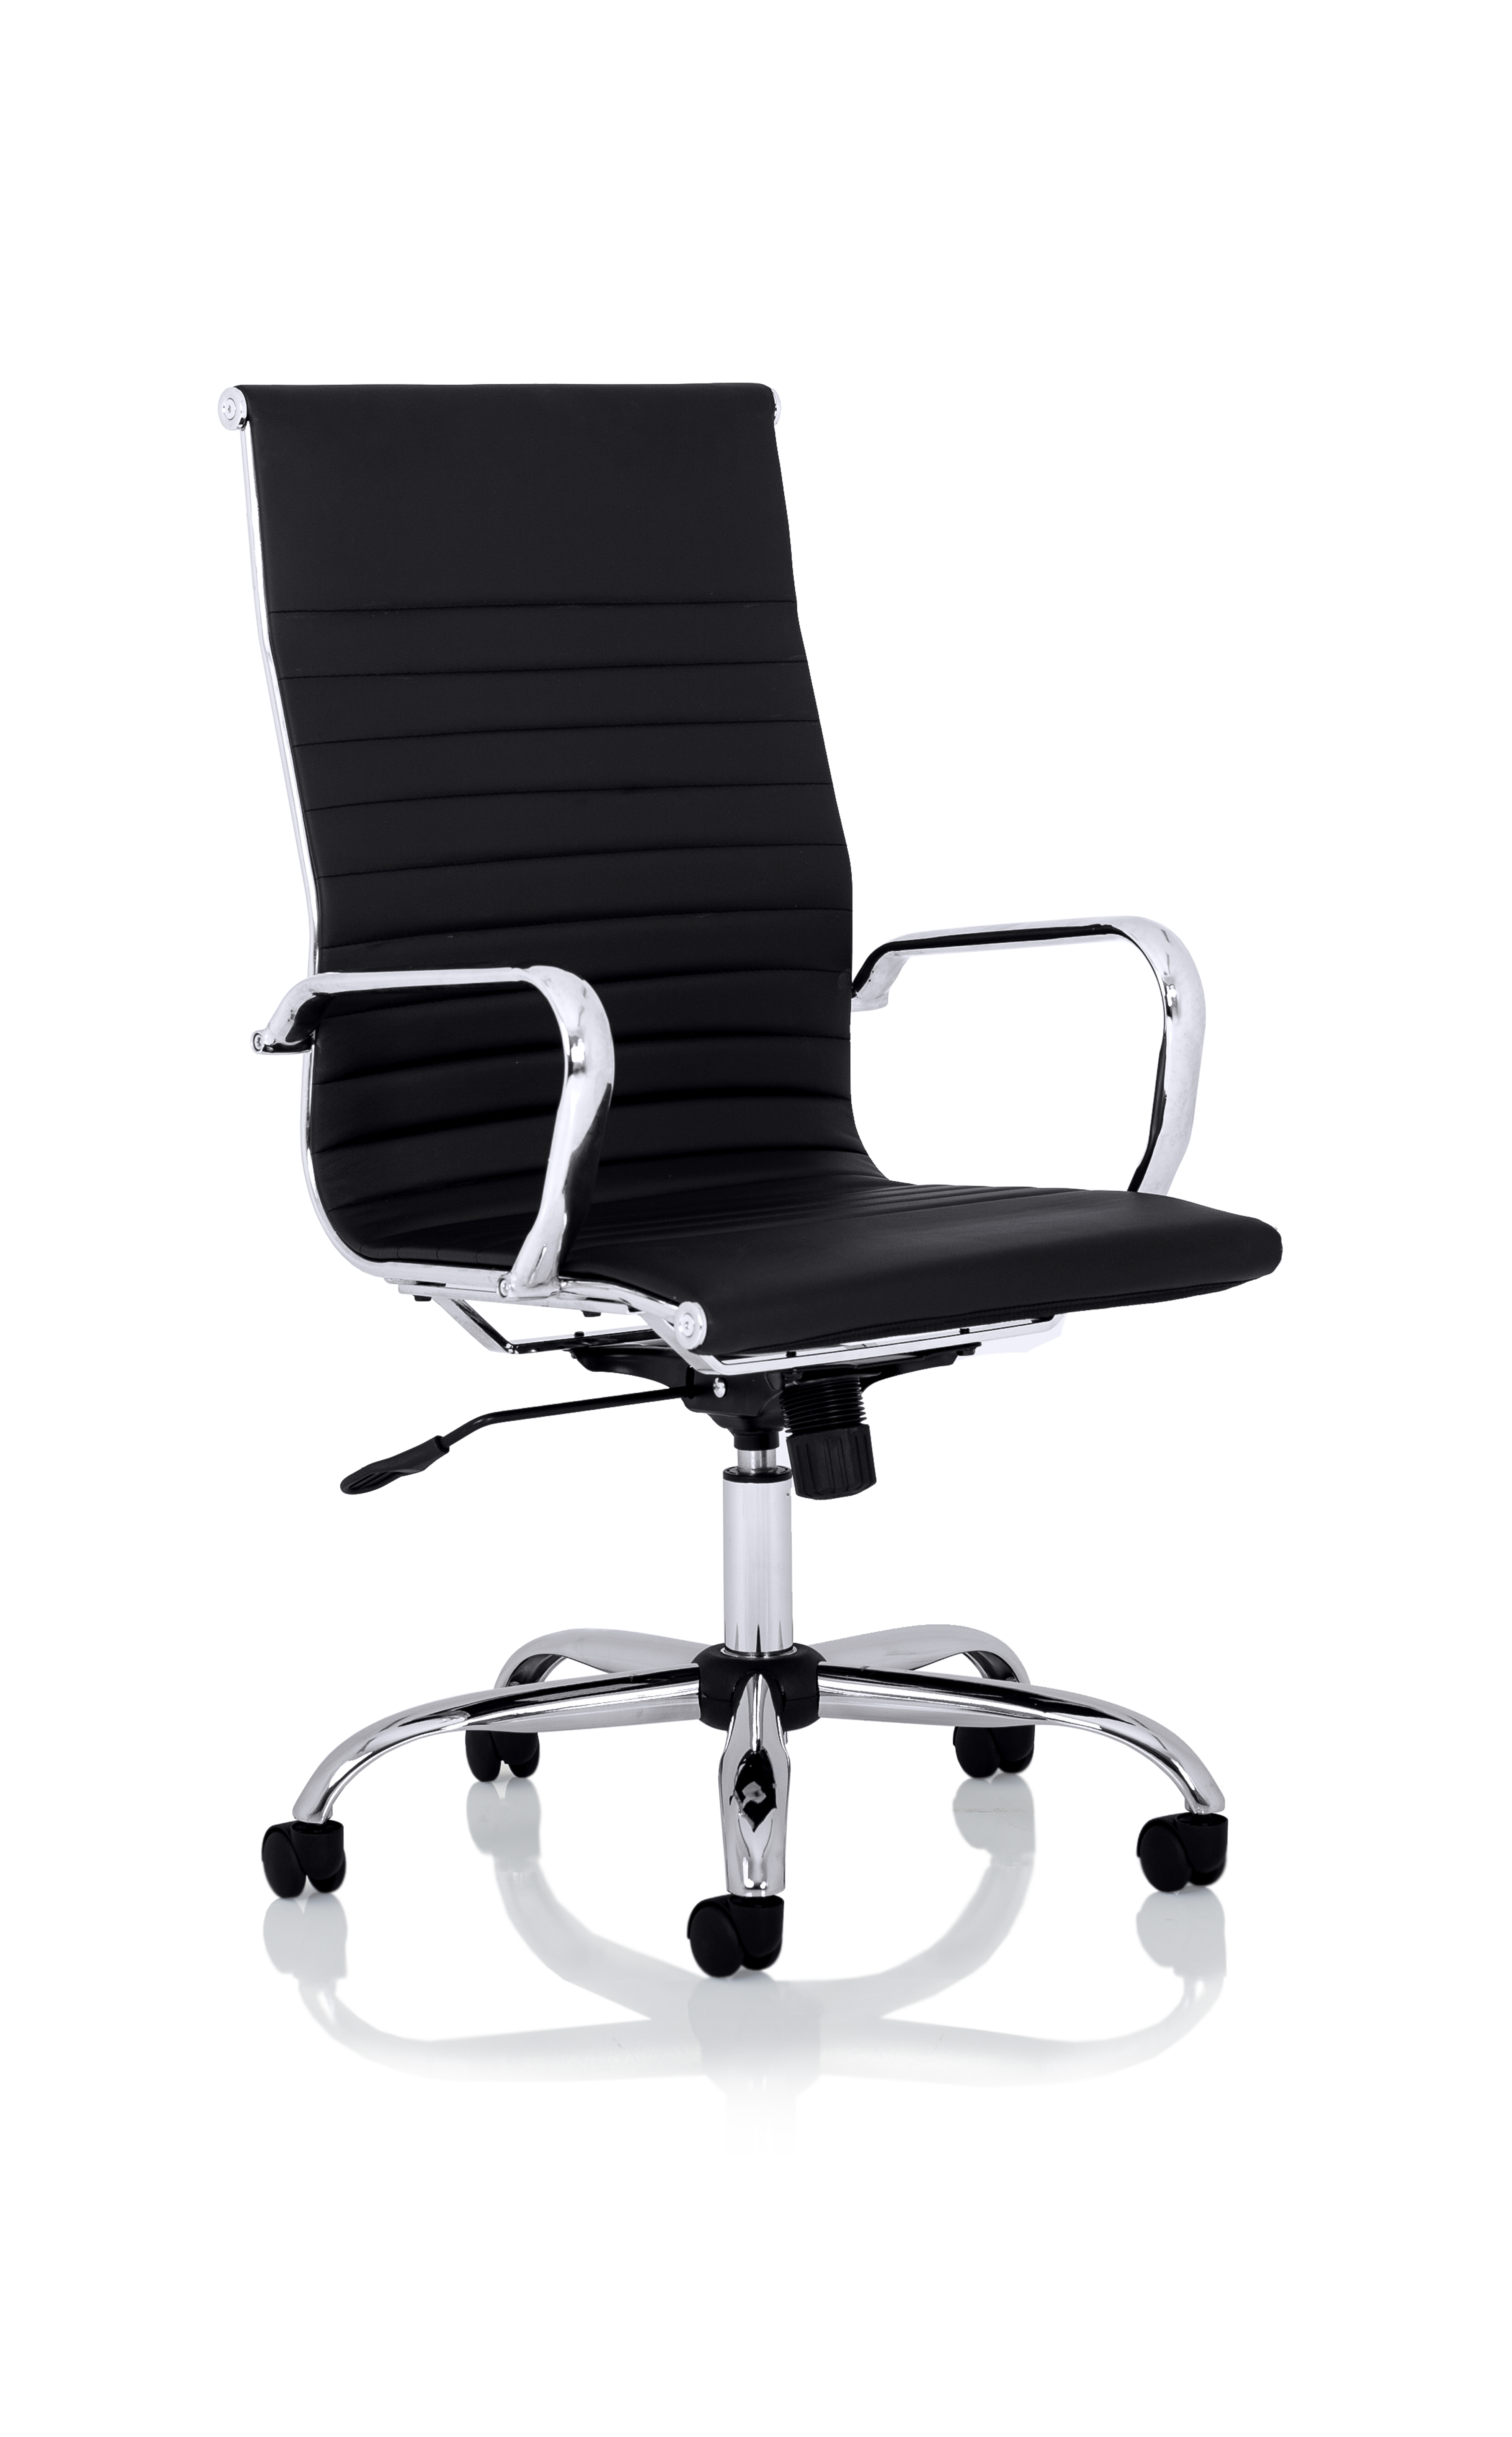 Executive Chairs Nola High Back Black Soft Bonded Leather Executive Chair OP000226